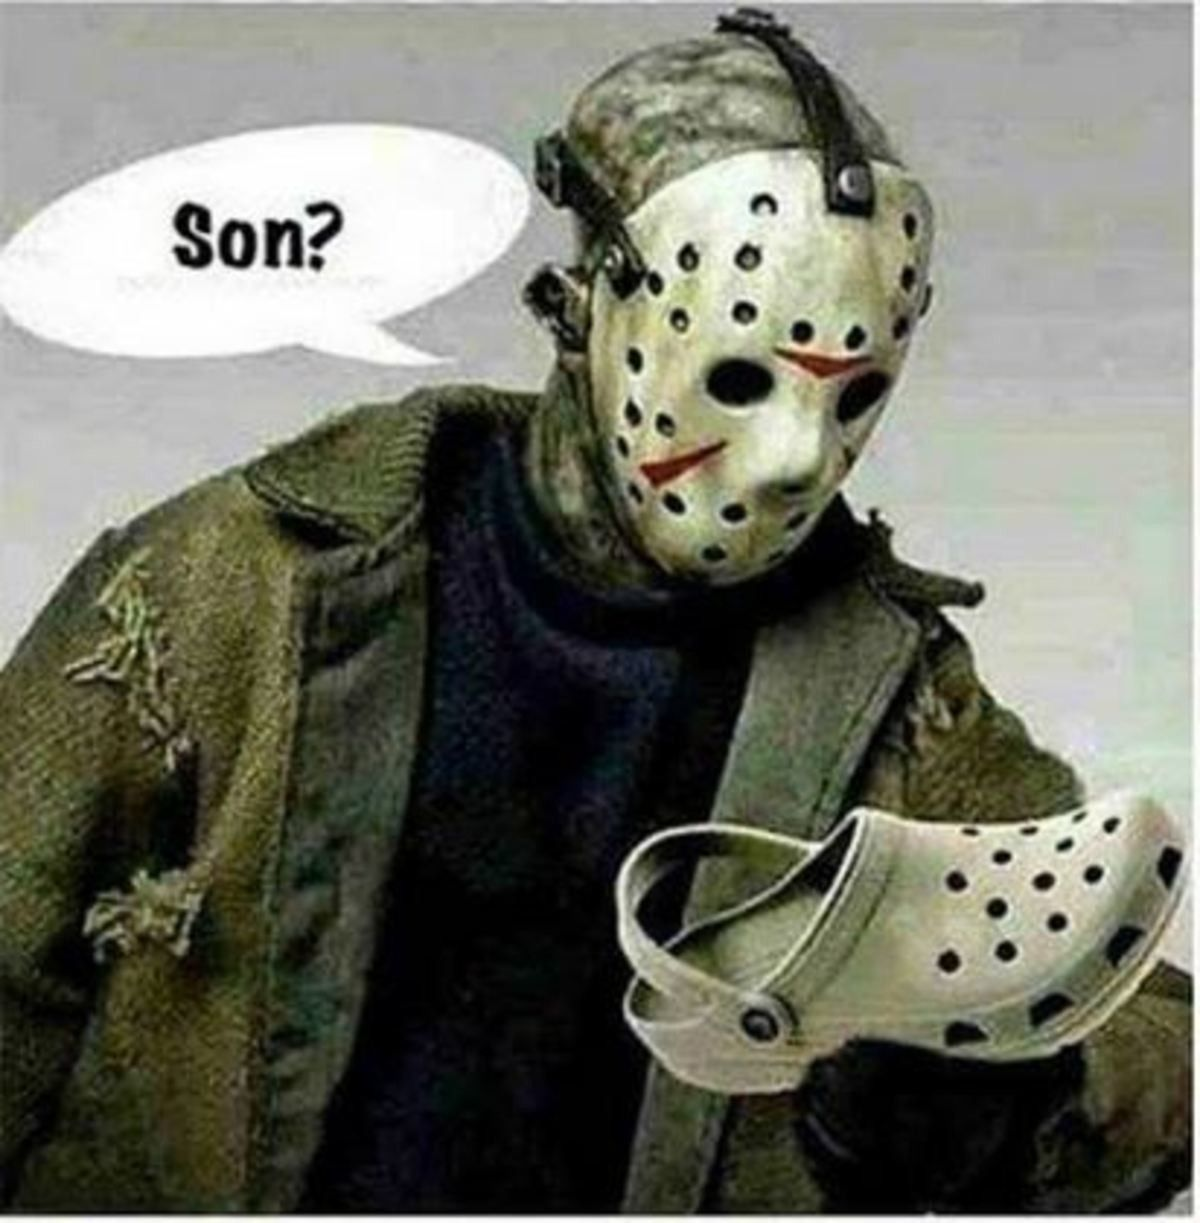 Jason Mask Grocery Shopping Meme